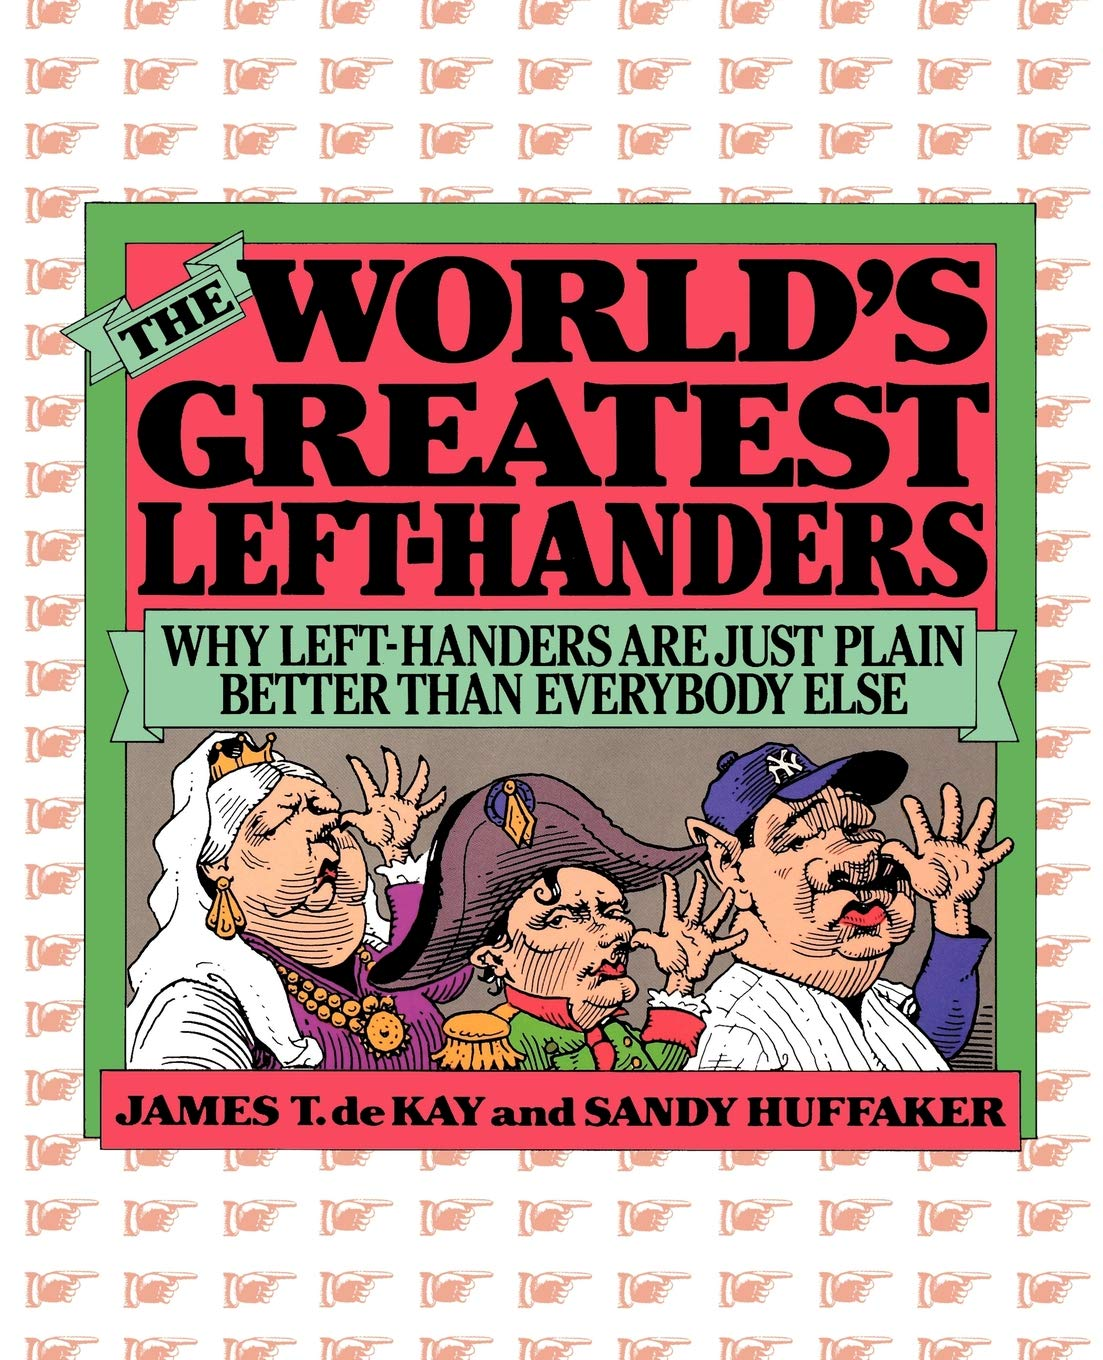 The Worlds Greatest Left-Handers: Why Left-Handers are Just Plain Better Than Everybody Else